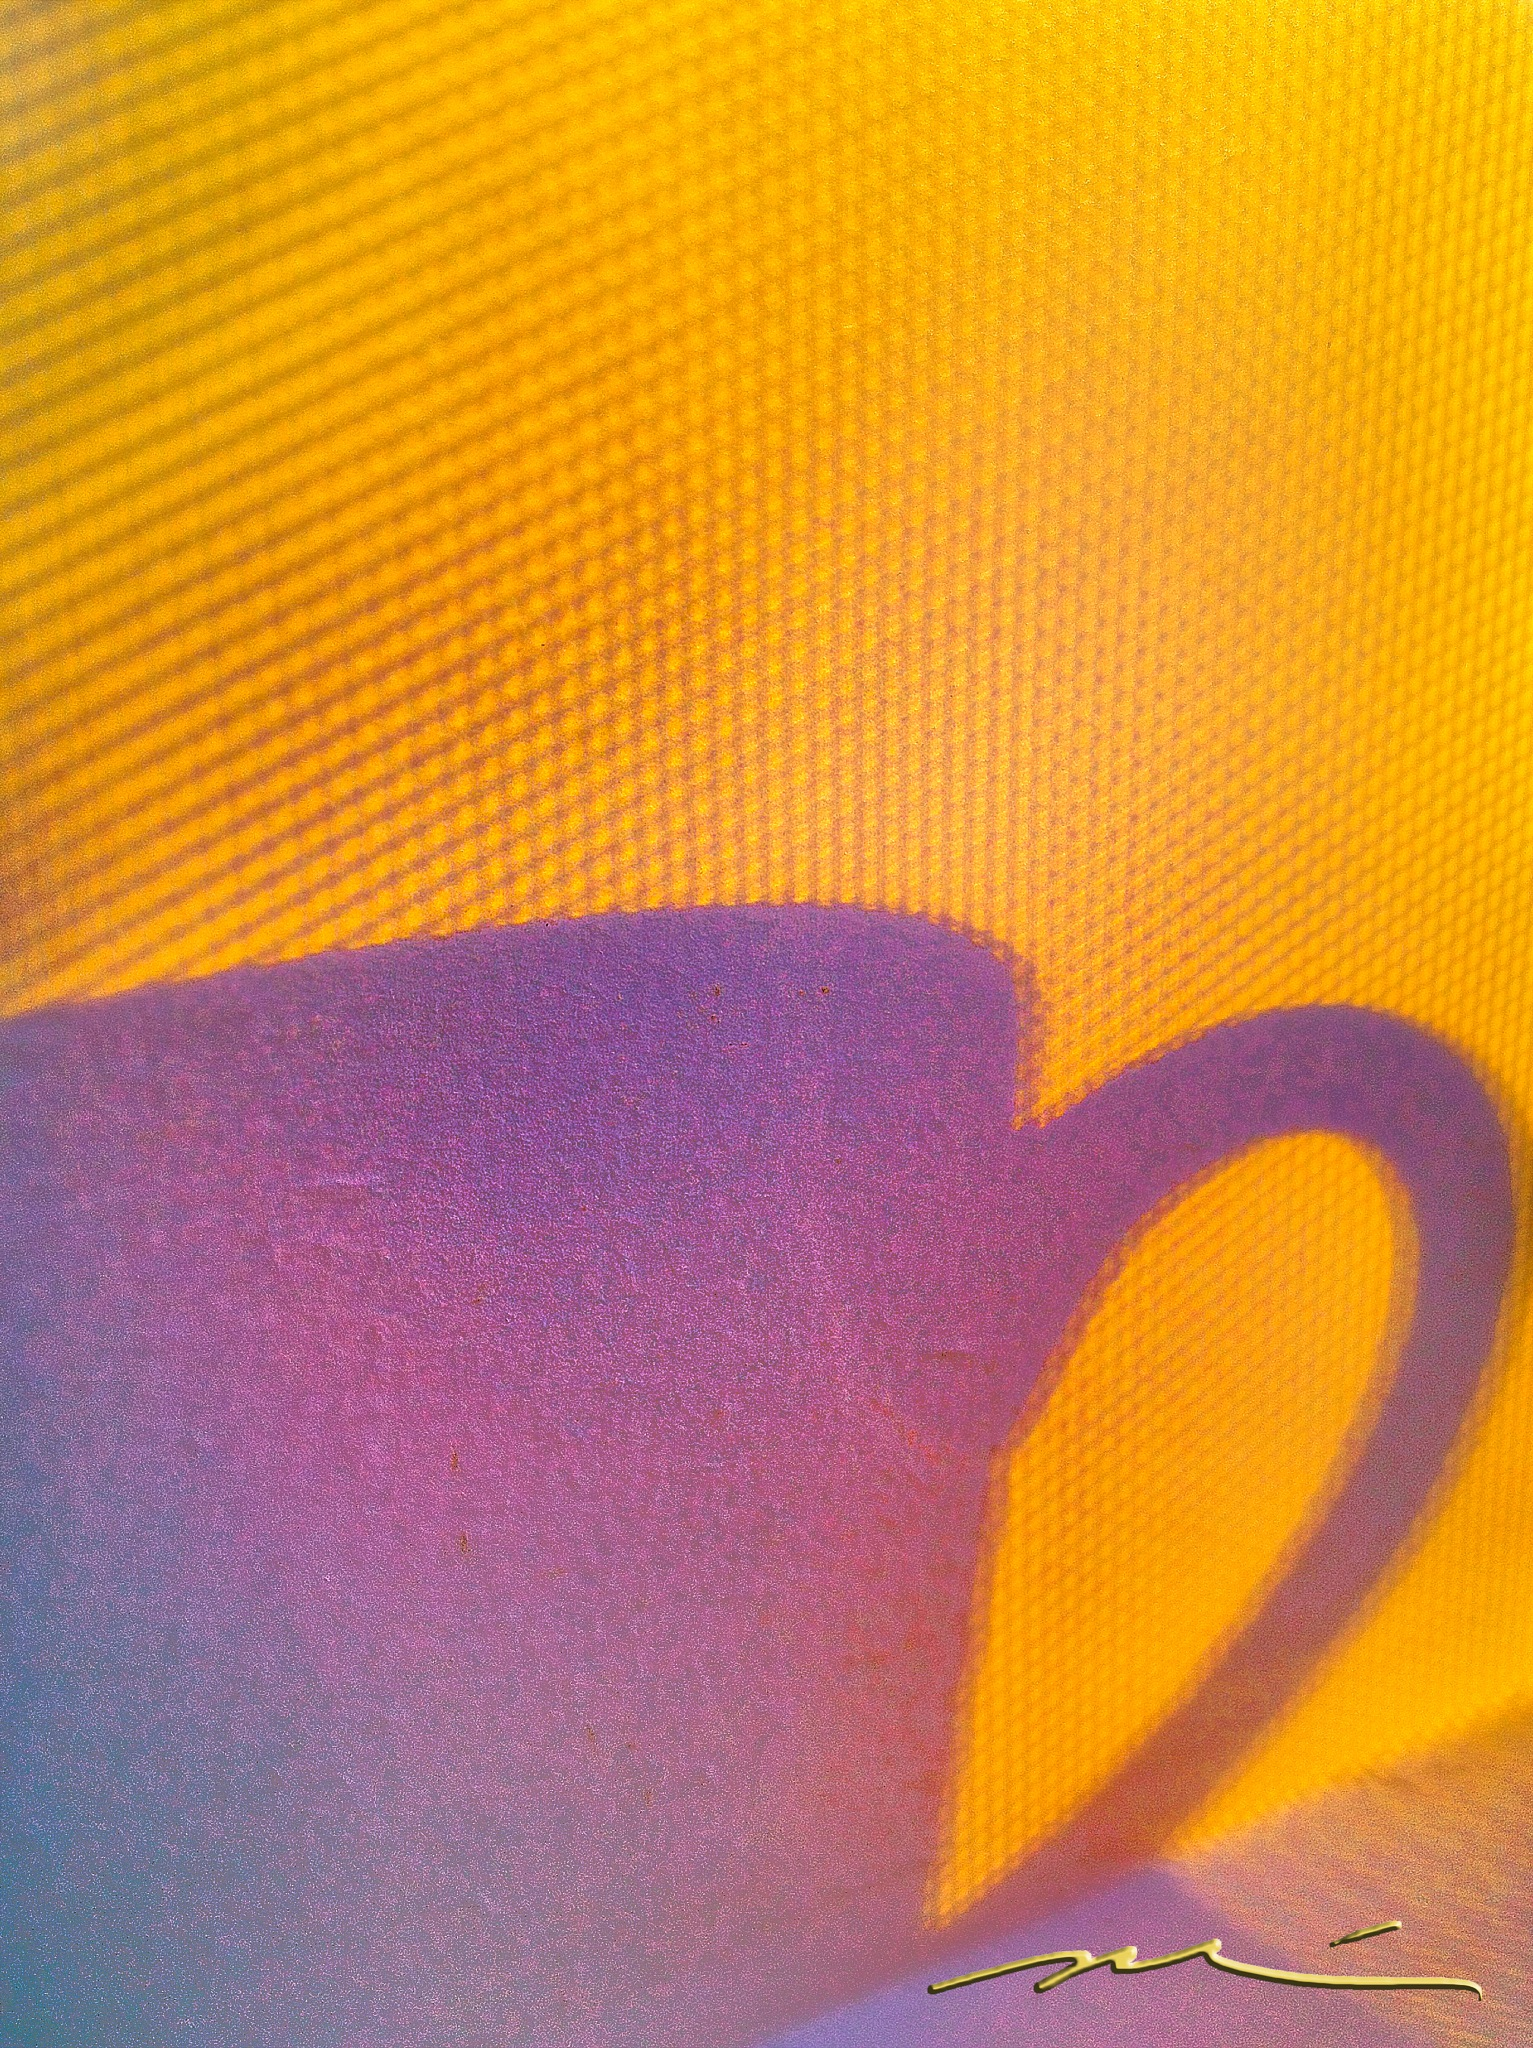 The Shadow of a Coffee Cup Sitting in a Screen Window by Michael D. Davis